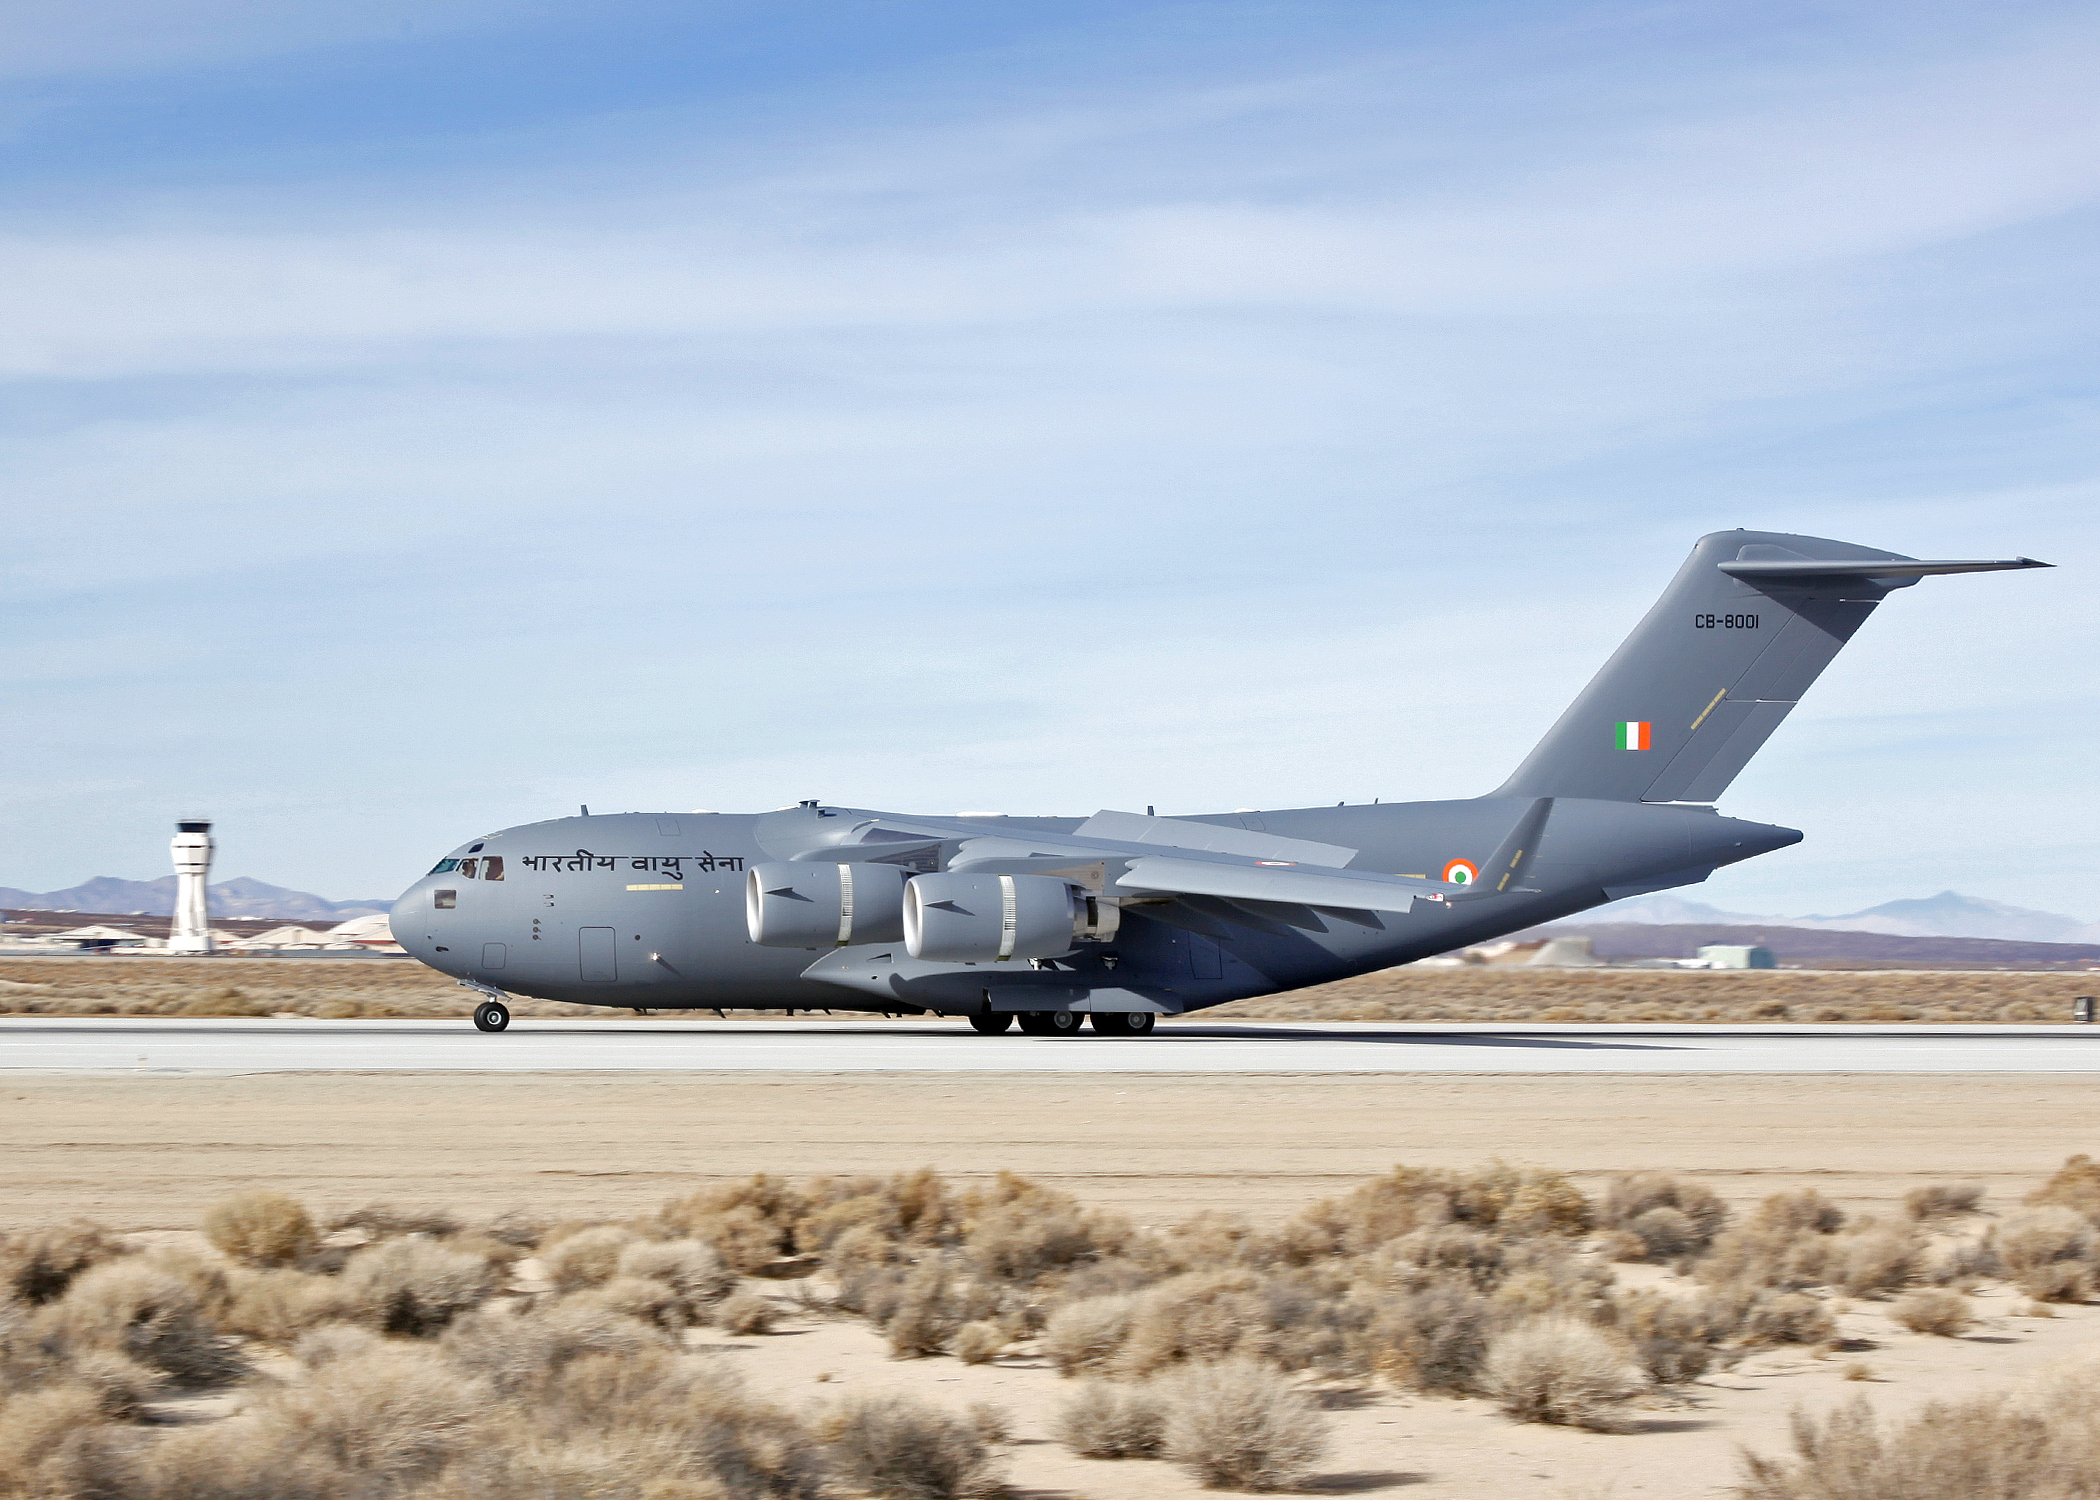 iaf boeing c-17 globemaster iii | air forces - indian air force